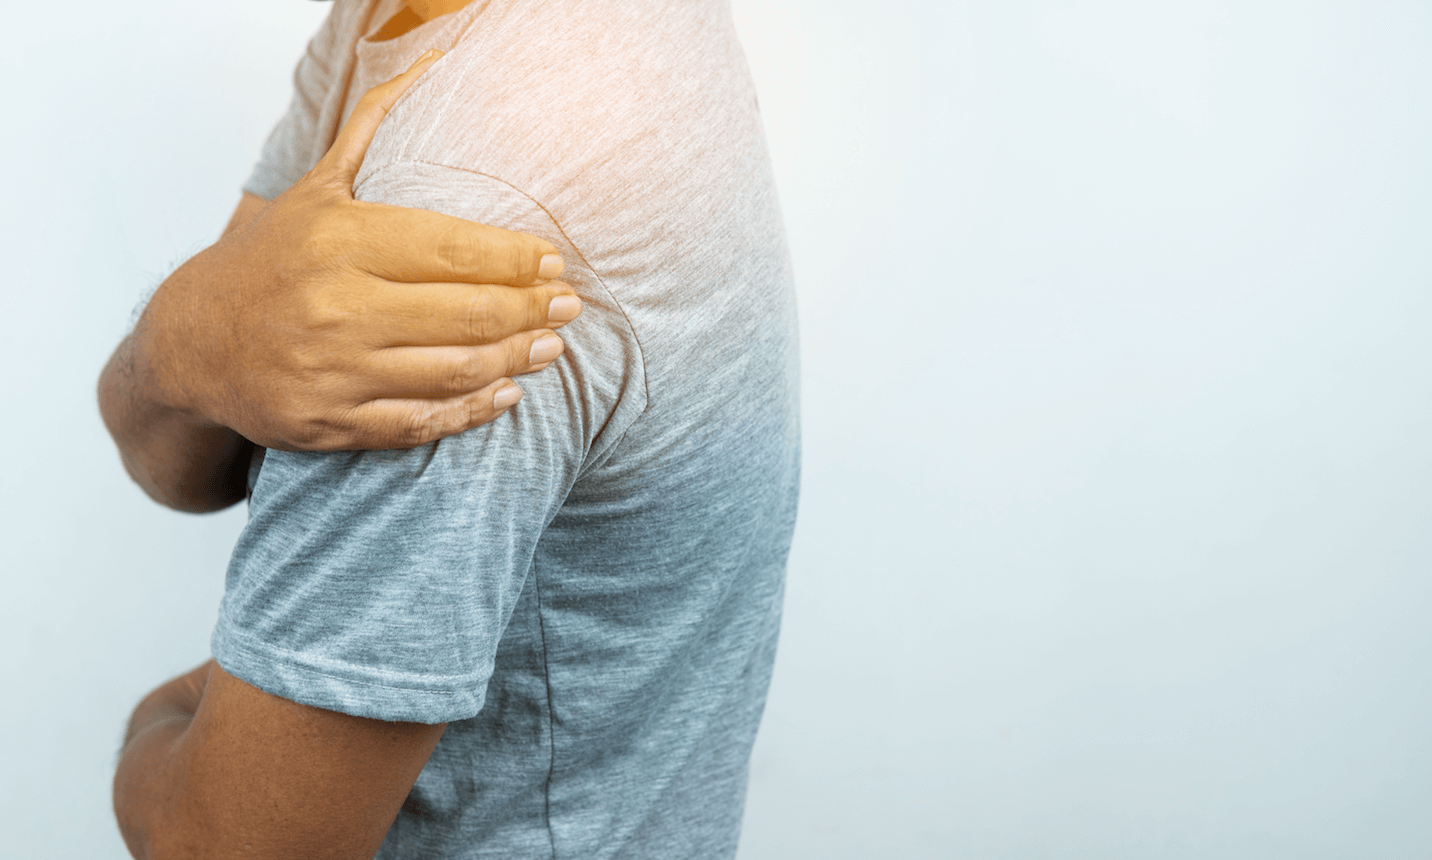 5-common-shoulder-injuries-find-relief-with-pt